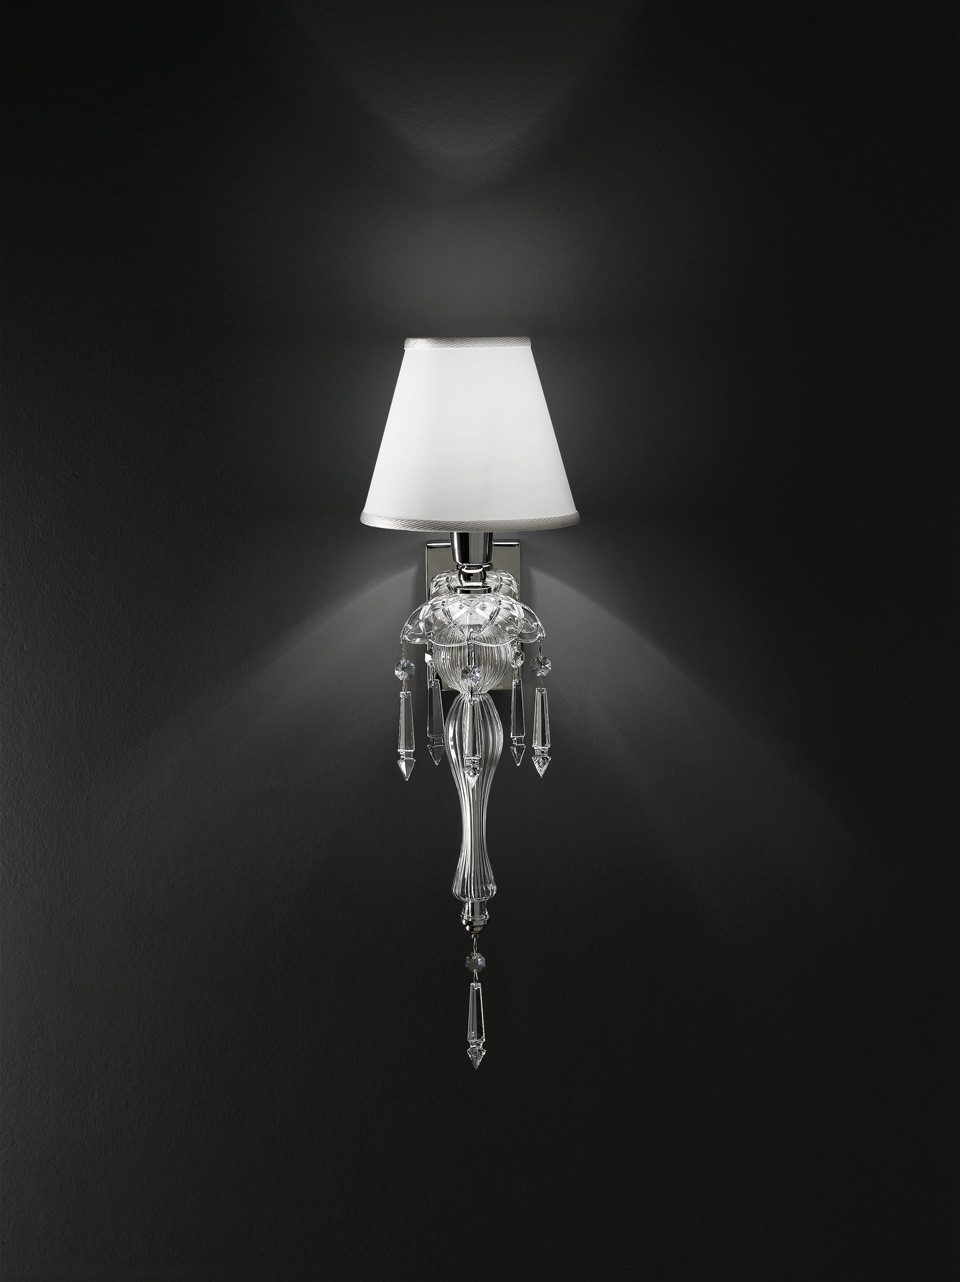 Image of: Crystal Wall Lamp For The Bathroom Italamp Salle De Bains Classic And Contemporary Chandelier Ref 18050085